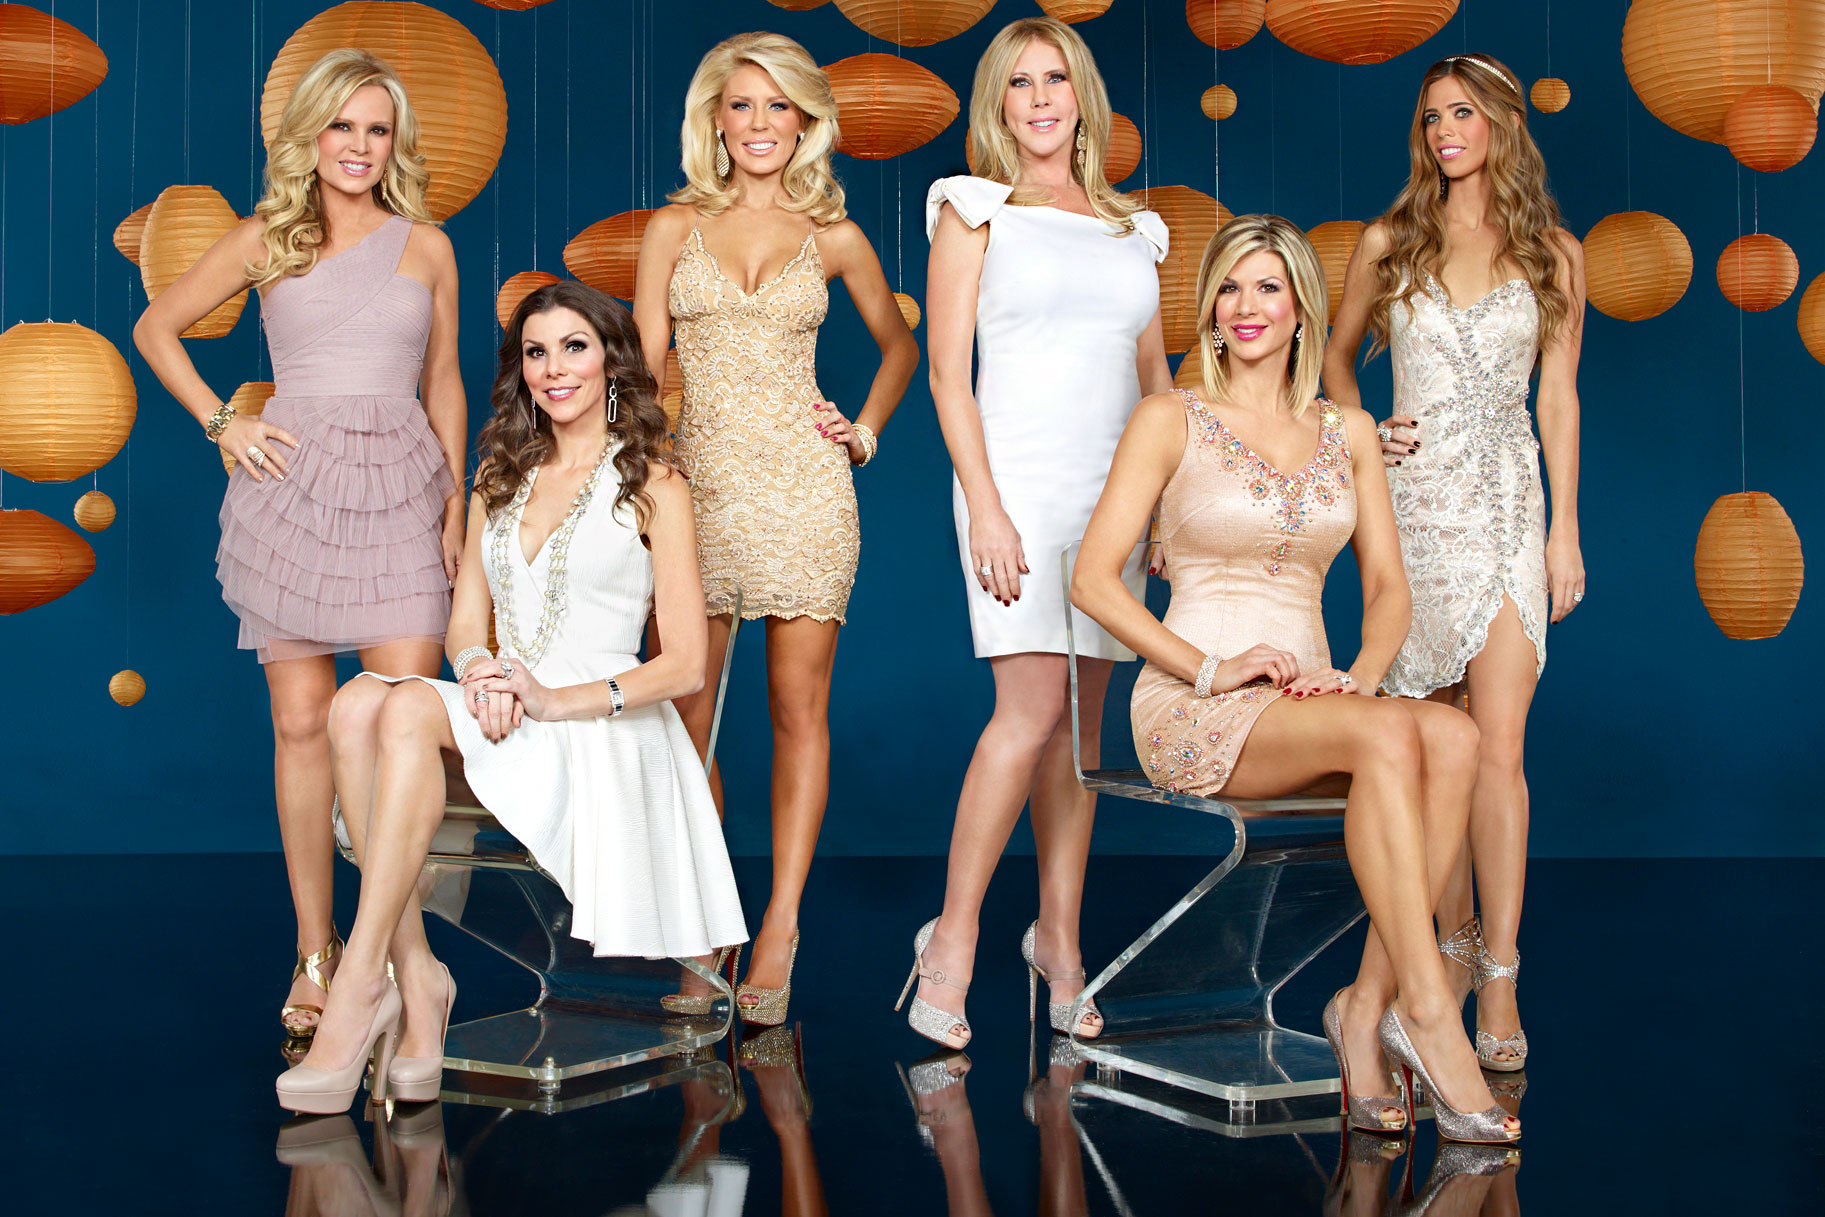 Real housewives of orange county s8 premiere date april 1 for Real houswives of orange county